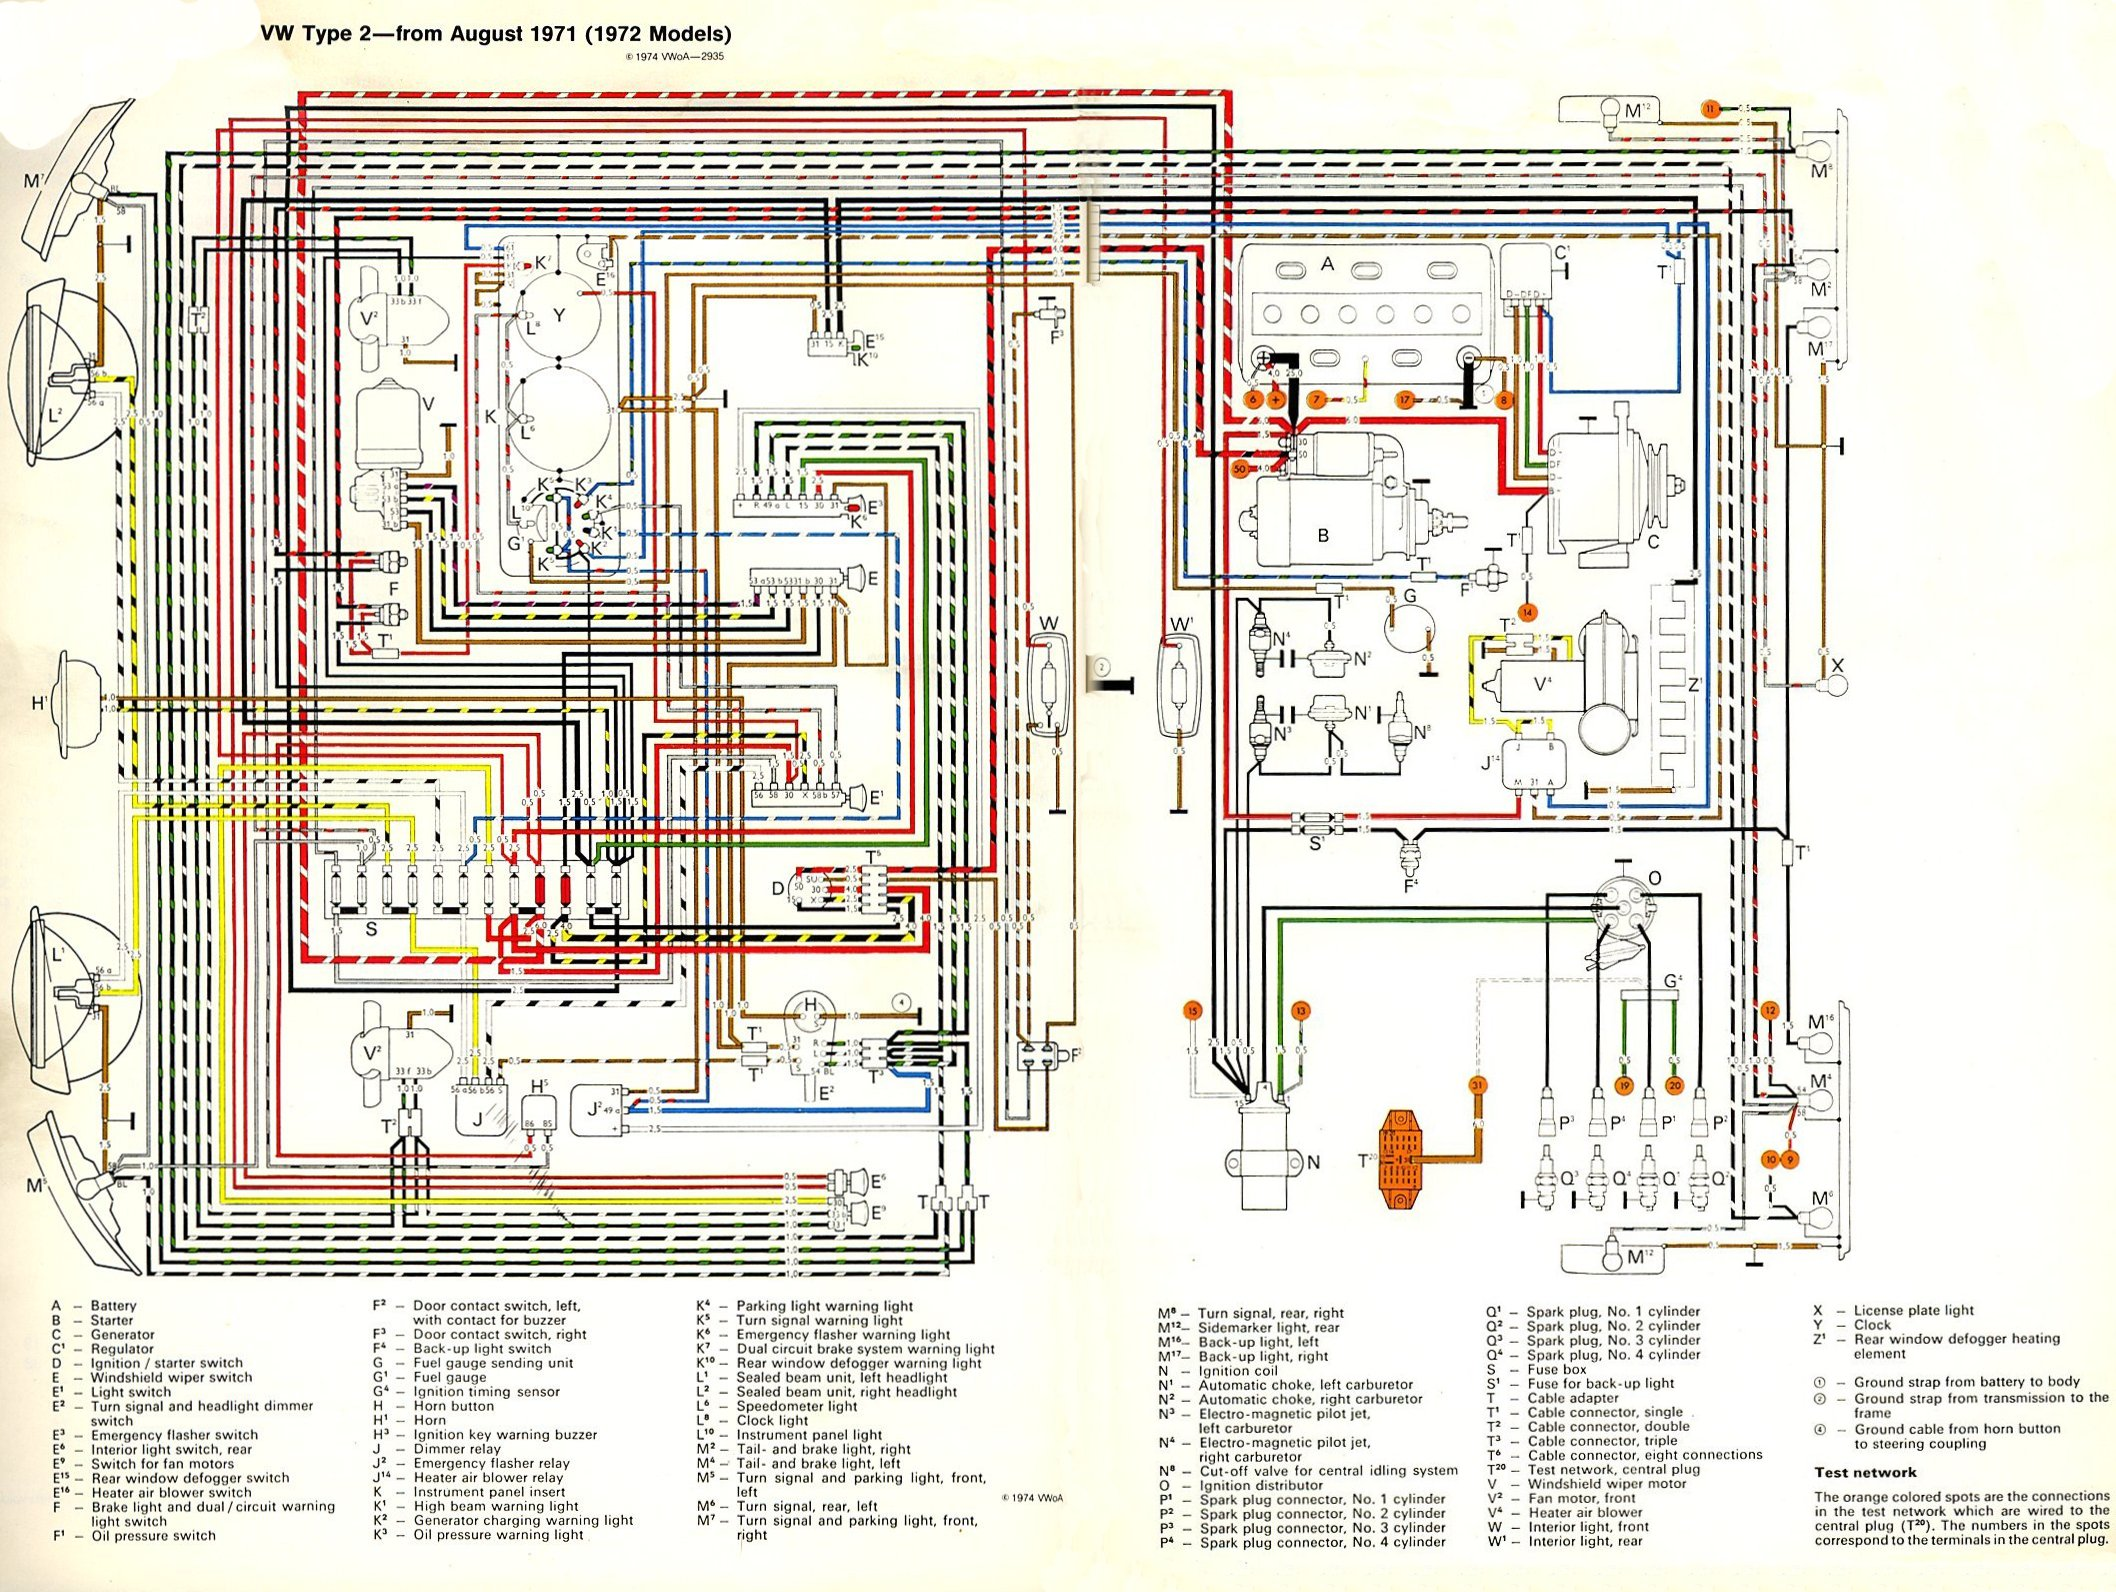 bus_1972_wiring 1965 c10 fuse box 1965 free download images wiring diagram,1971 Chevy Nova Fuse Box Diagram